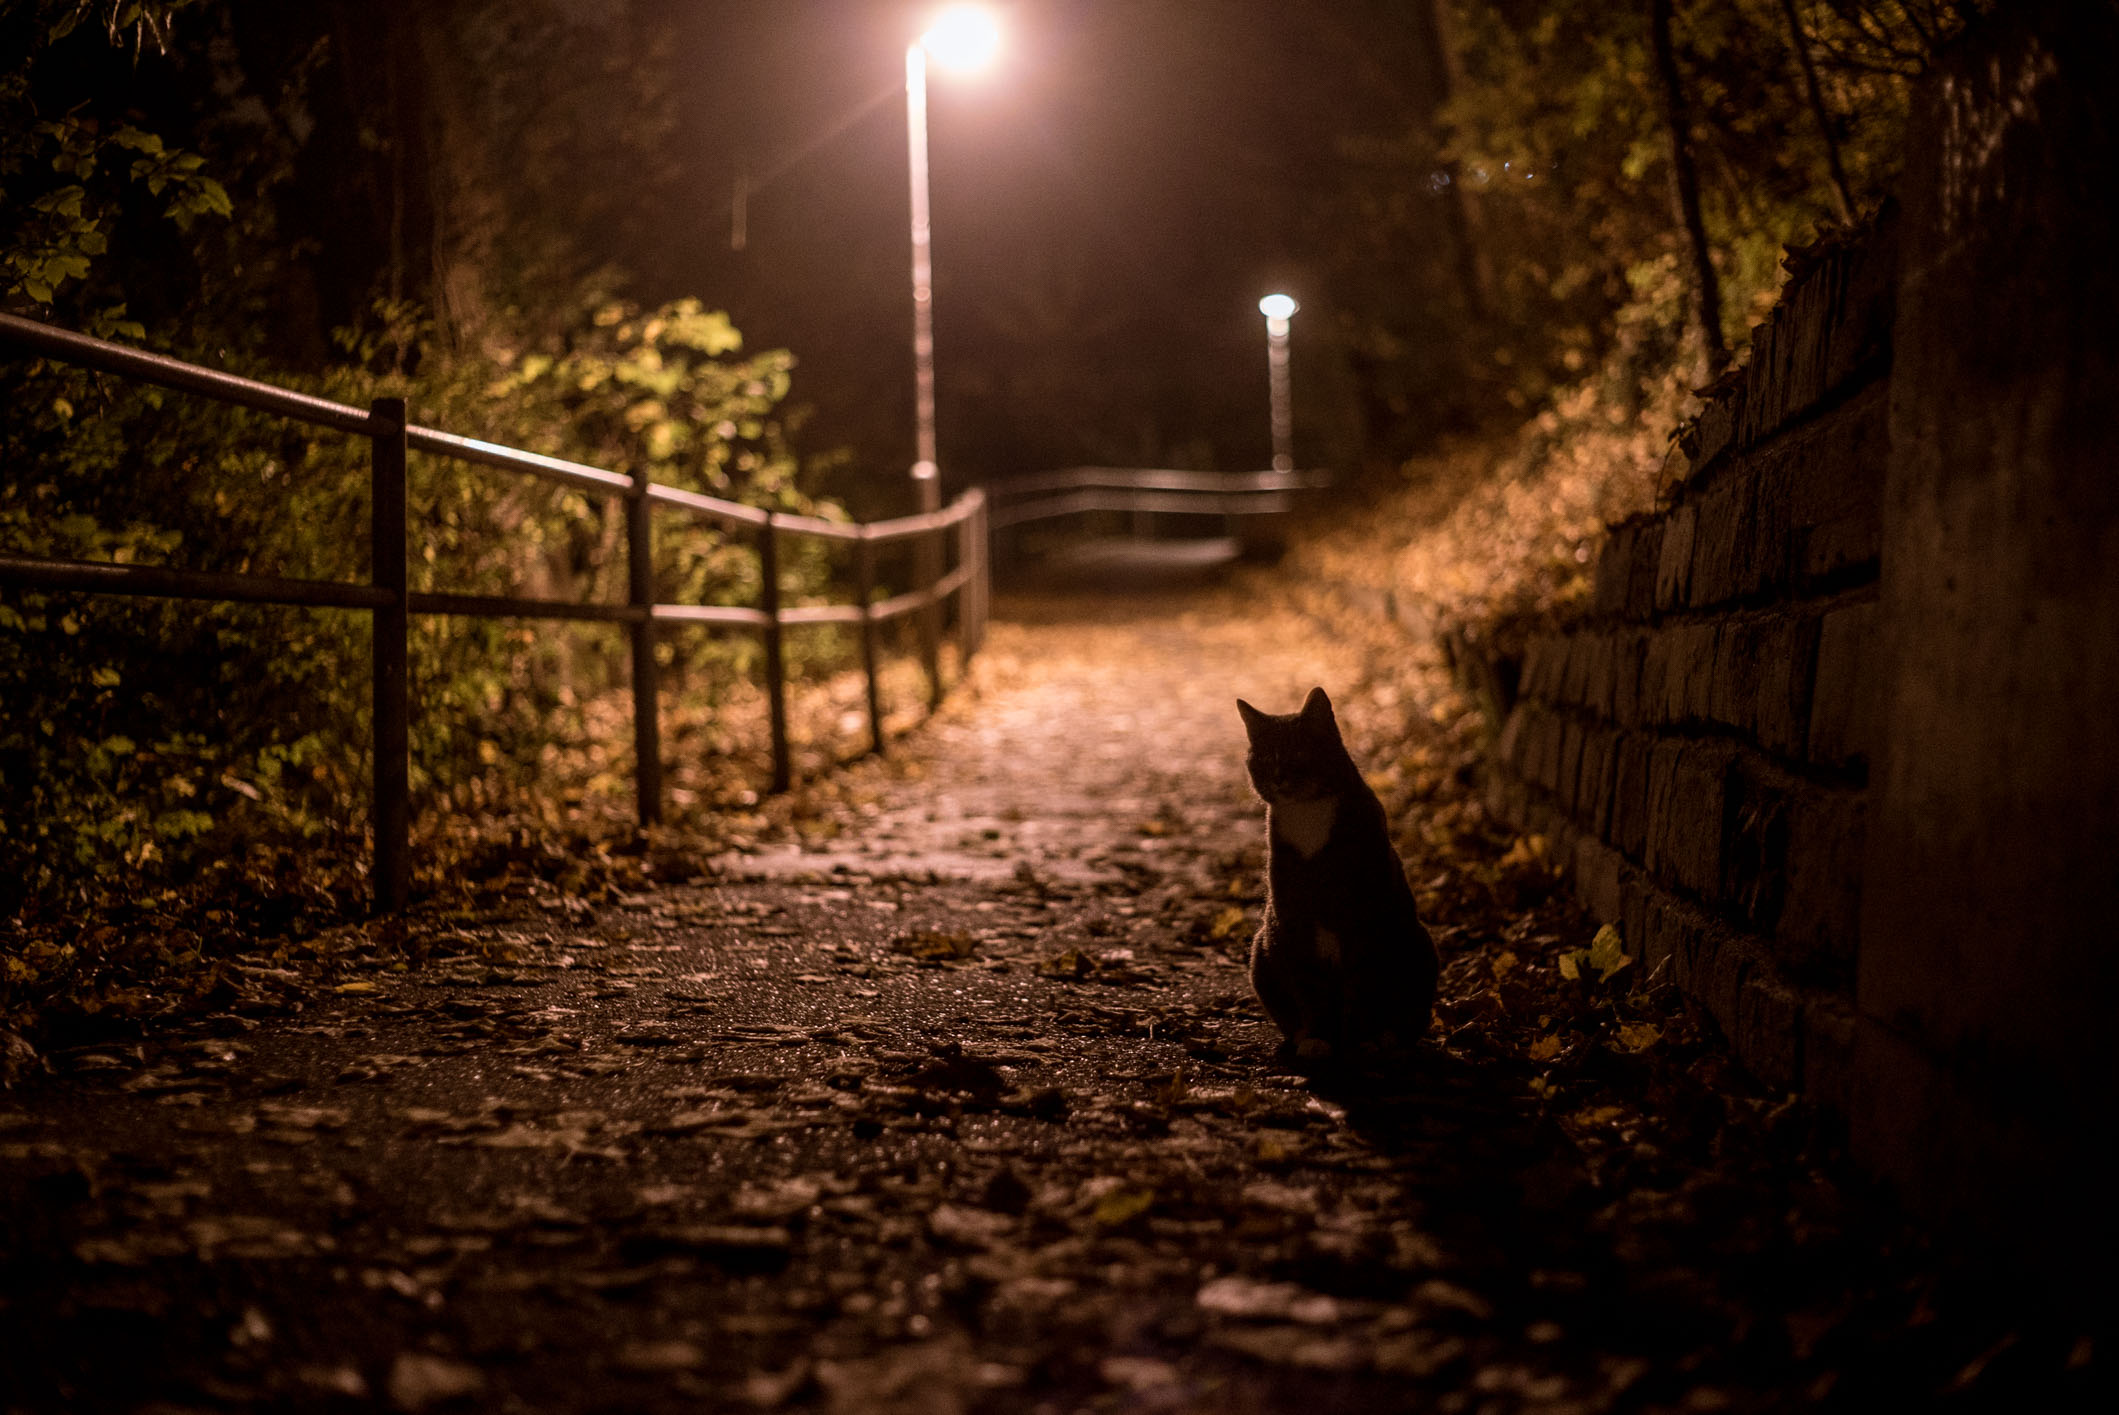 Photo by Pascal Sommer - This cat followed me for at least 300 metres, but it took me a while to get it to stop in the right place for this picture